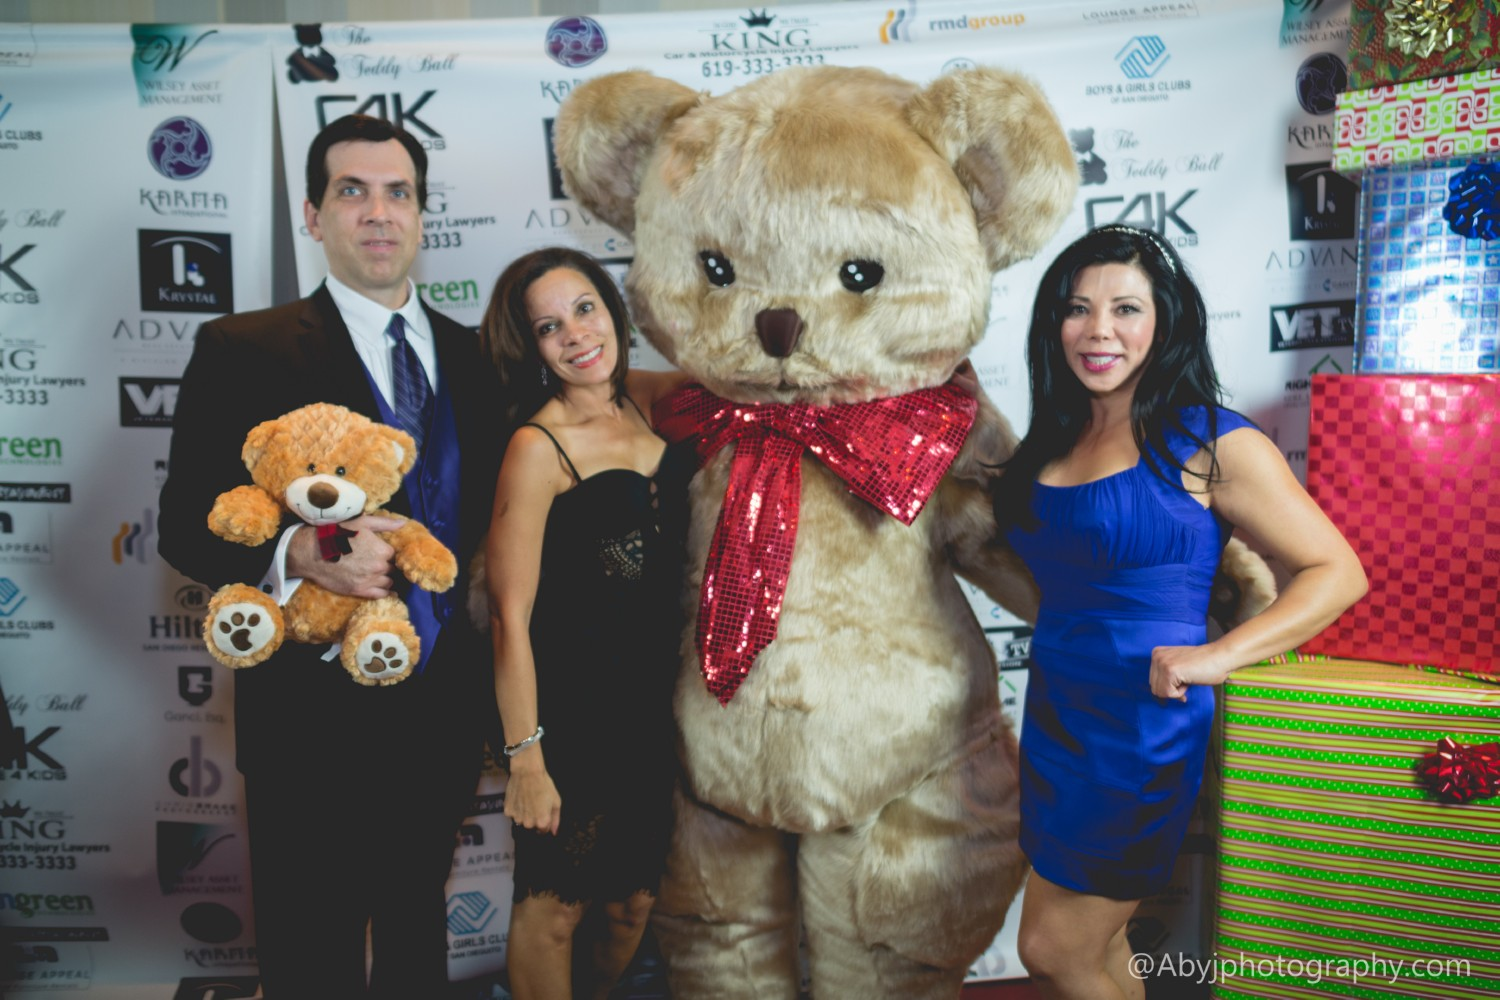 ABYJ_Photography_2016_Teddy_Ball - 178.jpg